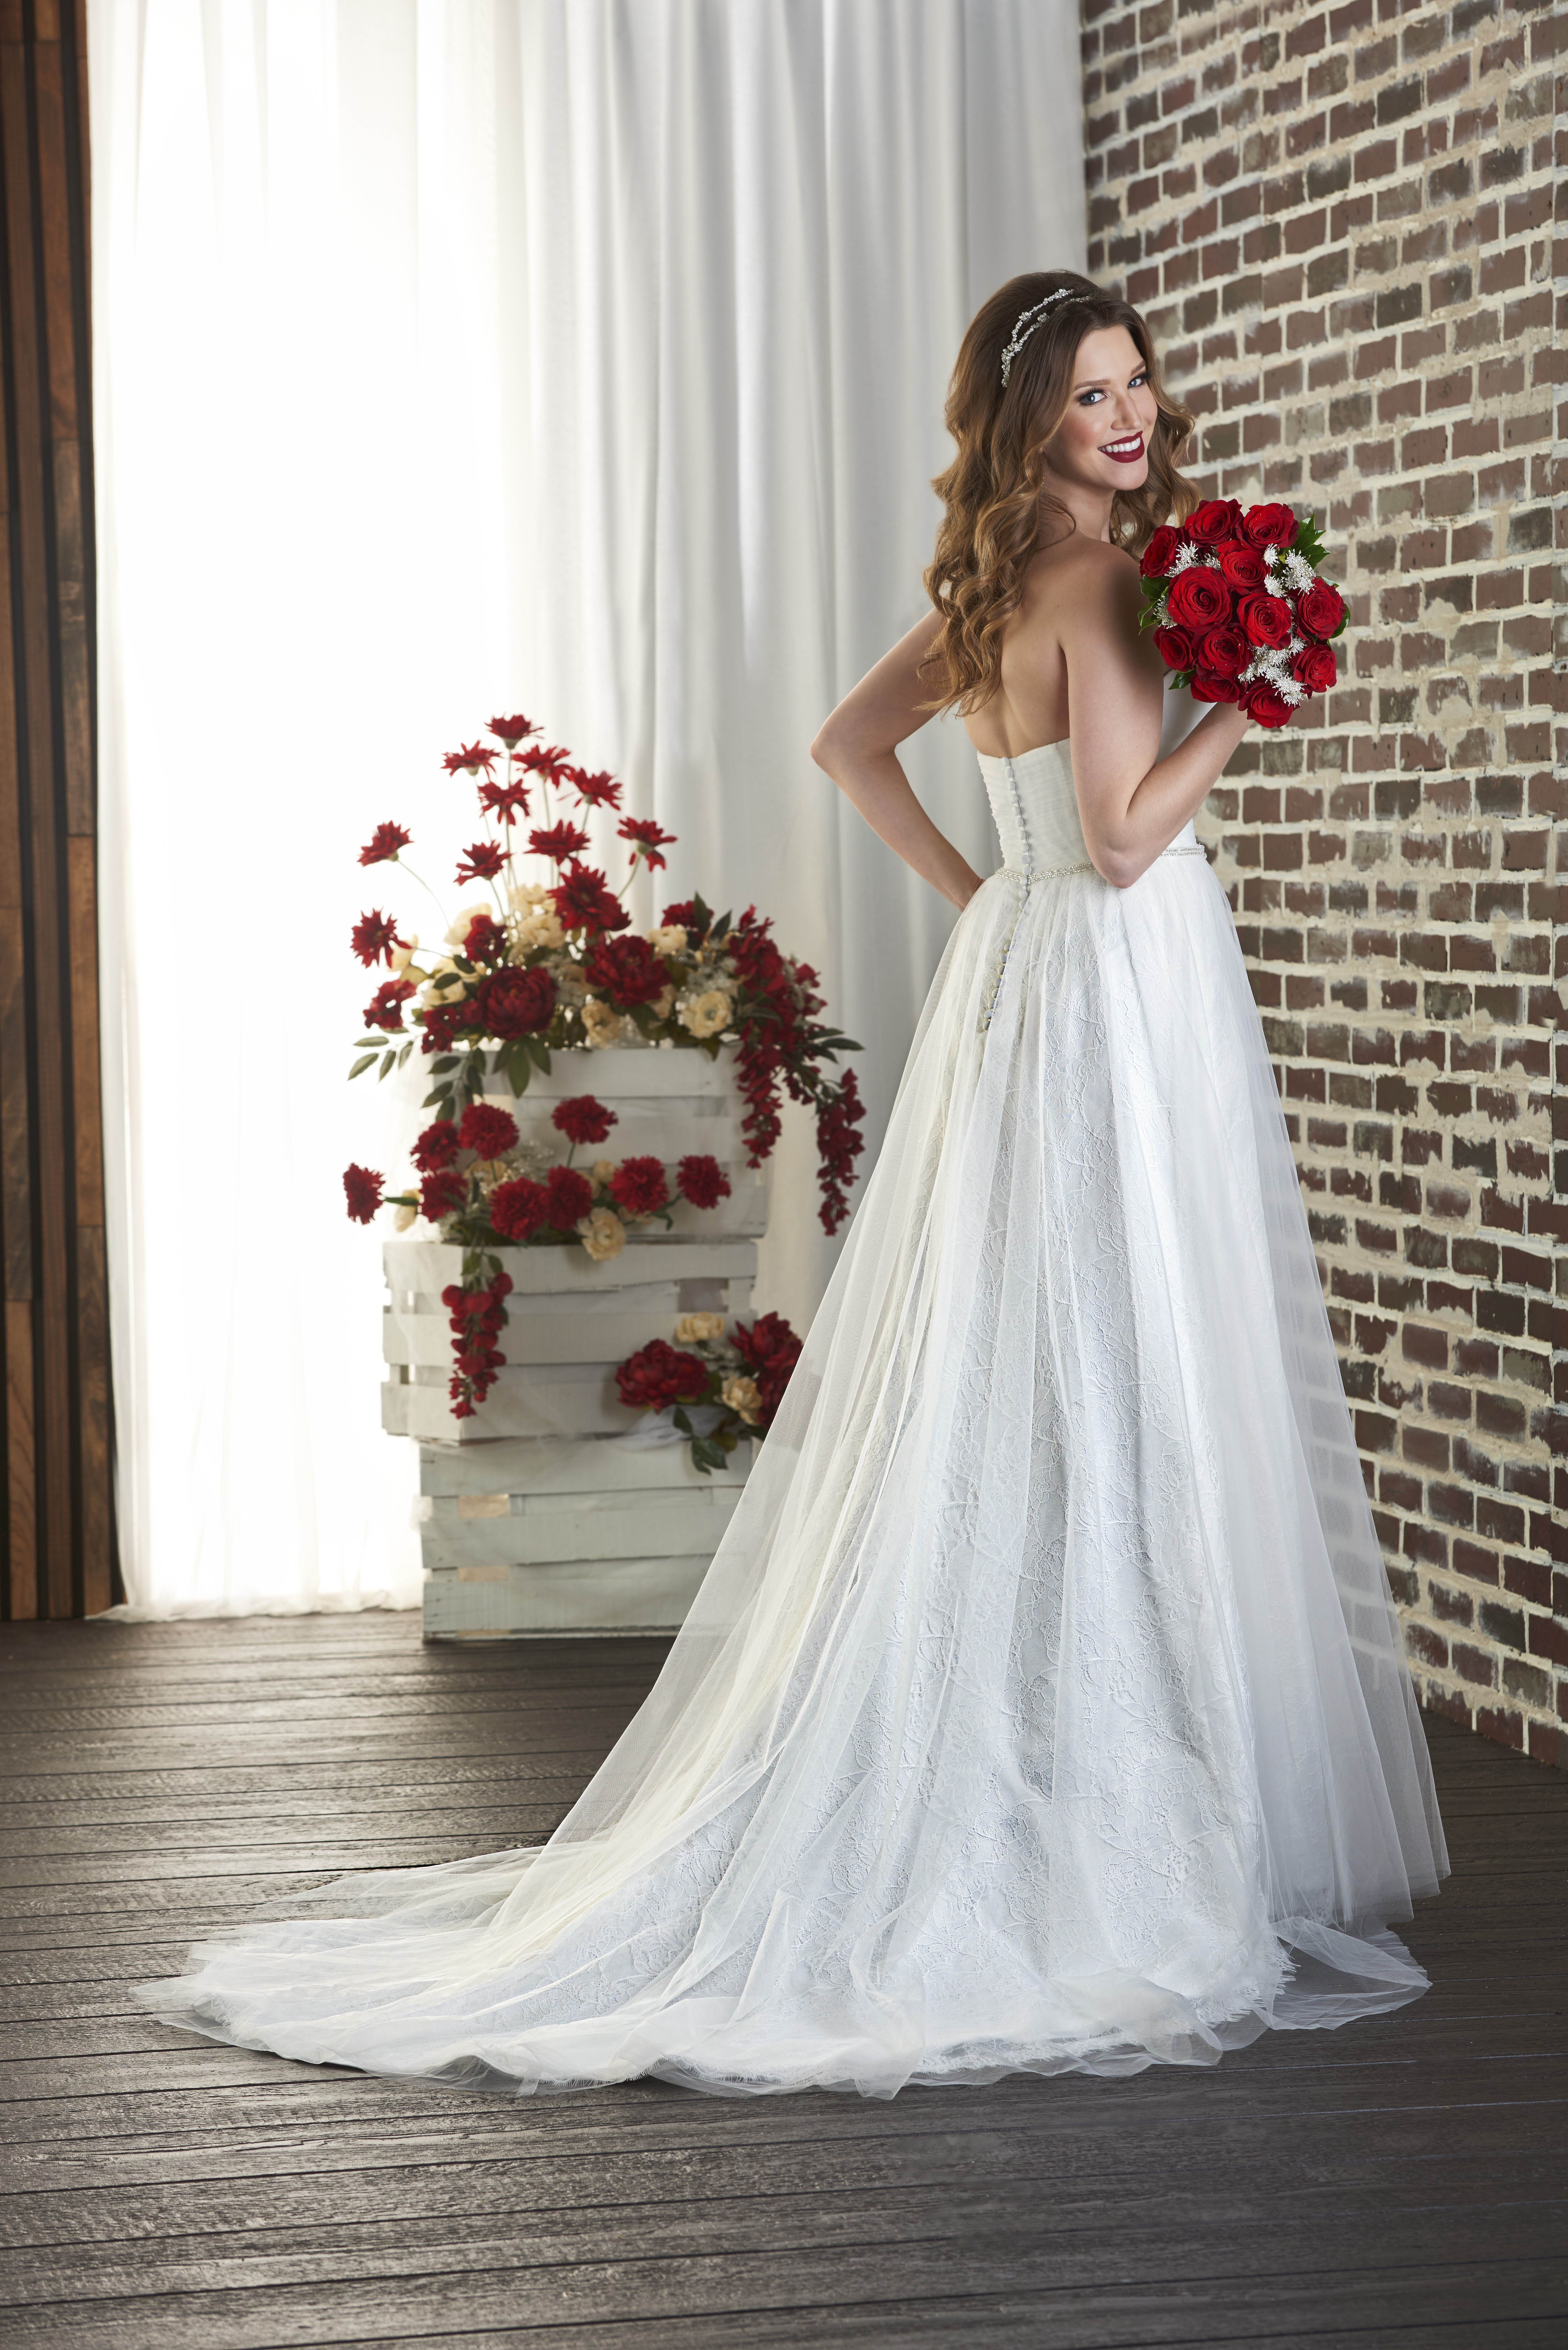 Destination wedding dresses from the Love collection by Bonny Bridal ...